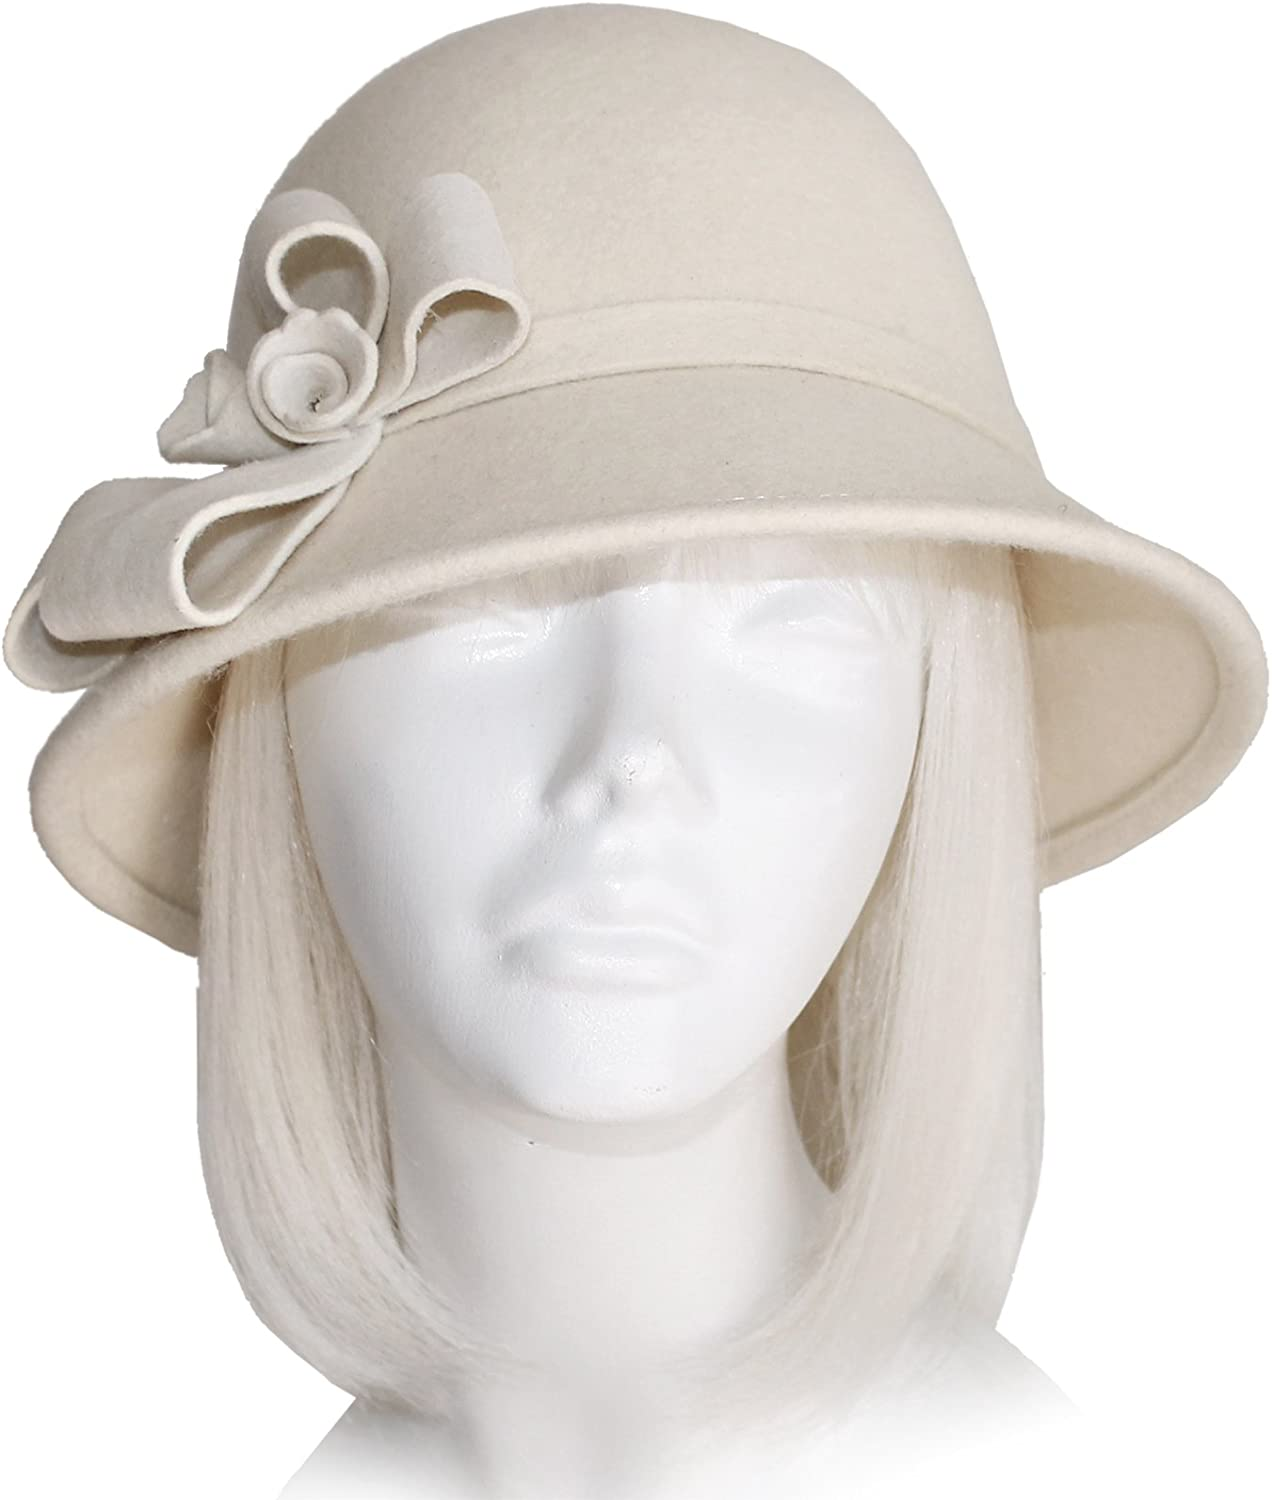 Mr. Song Millinery SoftAsCashmere Felt Bucket Cloche Hat  White FH112